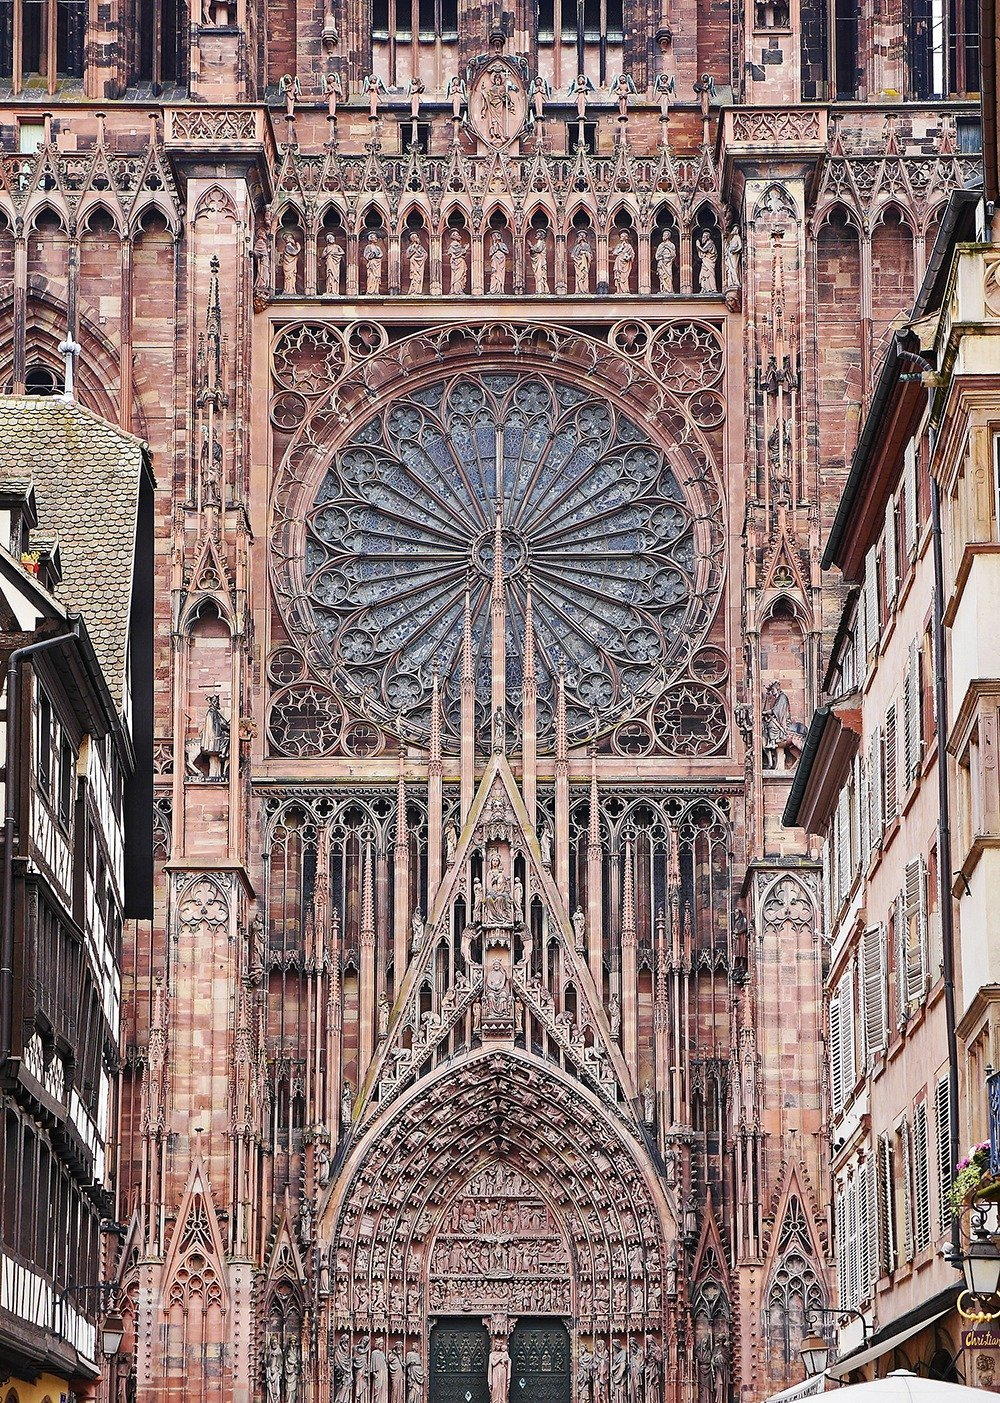 Strasbourg travel guide - One of the most impressive structures built in the Middle Ages lies in the center of Strasbourg – the massive Cathedral of our Lady of Strasbourg. Admire its intricate façade and interiors and visit the astronomical clock inside – just one of the many amazing things to do in Strasbourg! Click through for a full guide.